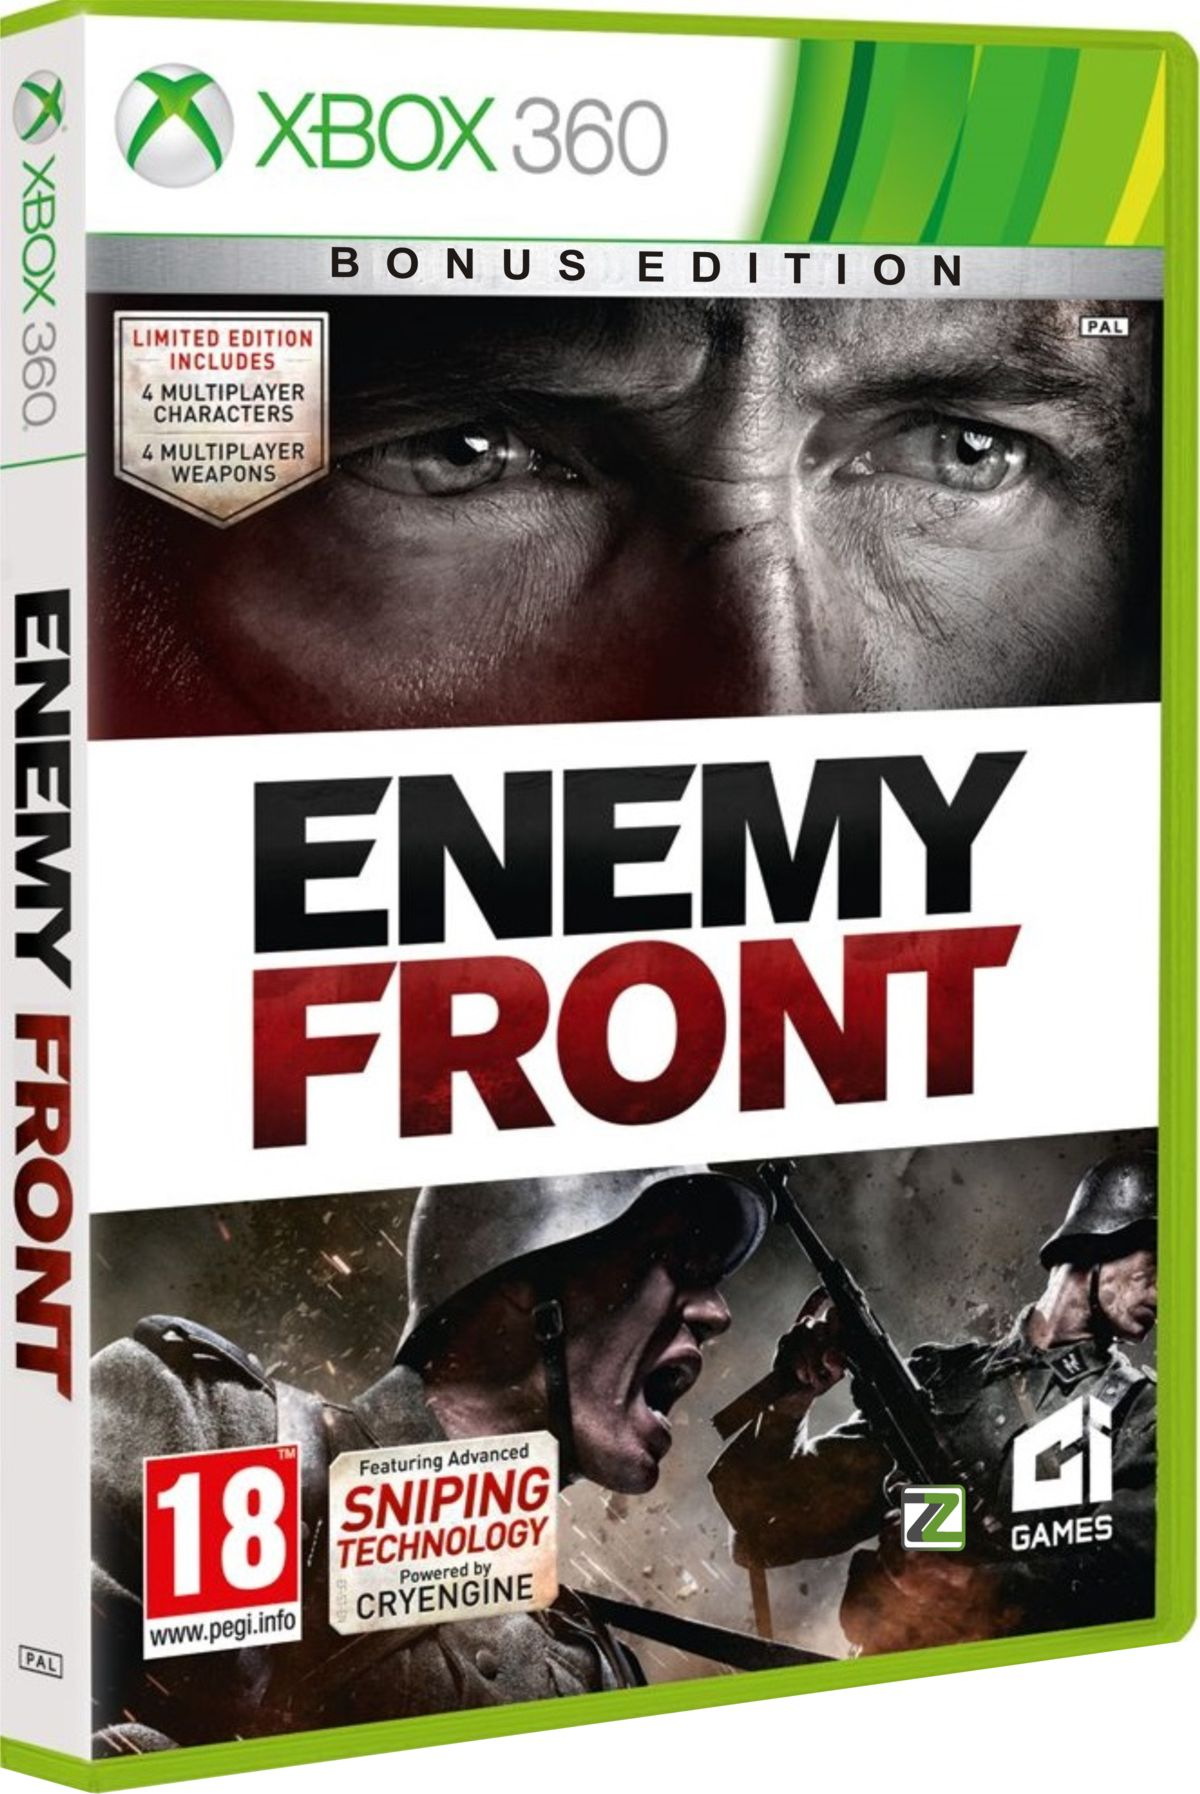 ENEMY FRONT Bonus Edition - X360